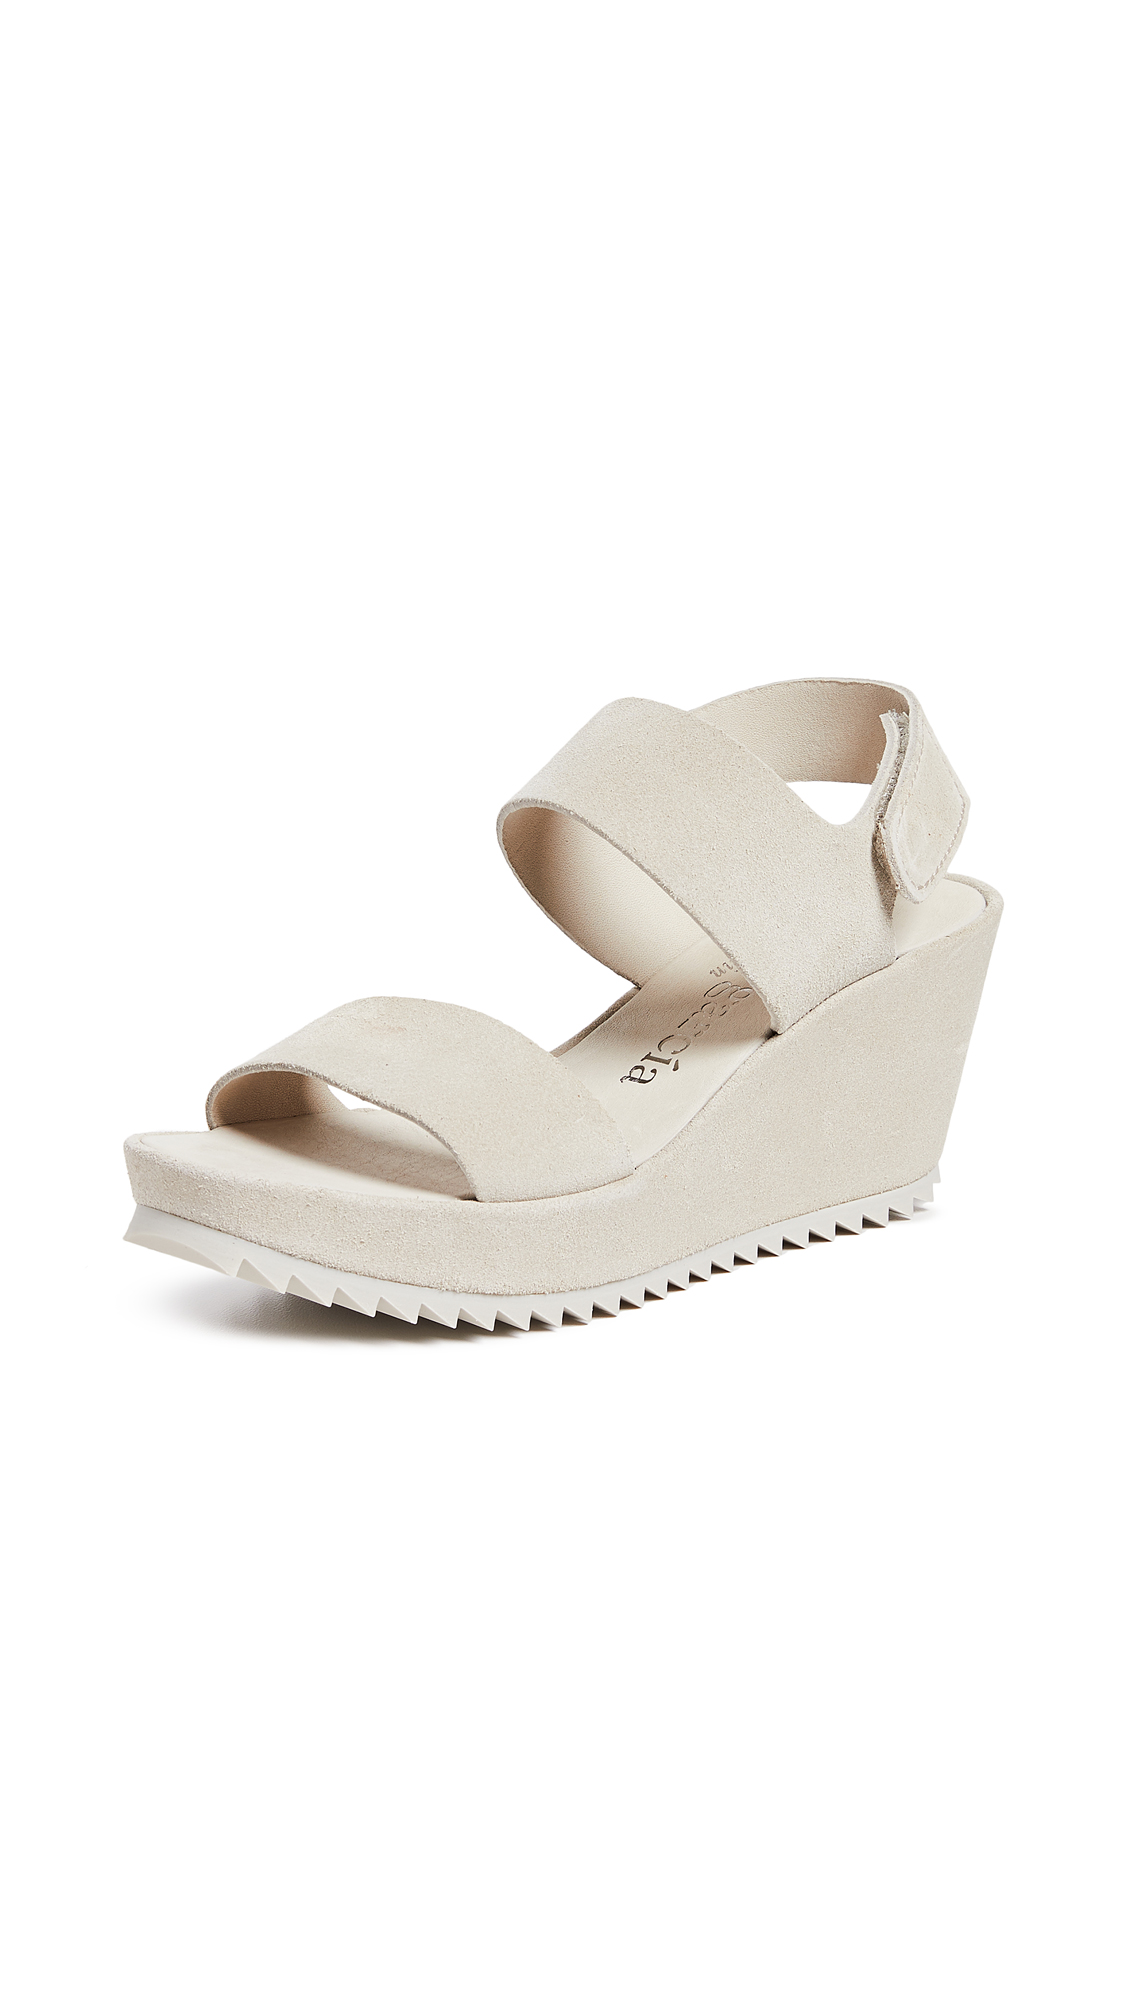 Pedro Garcia Fiona Wedge Sandals - Birch